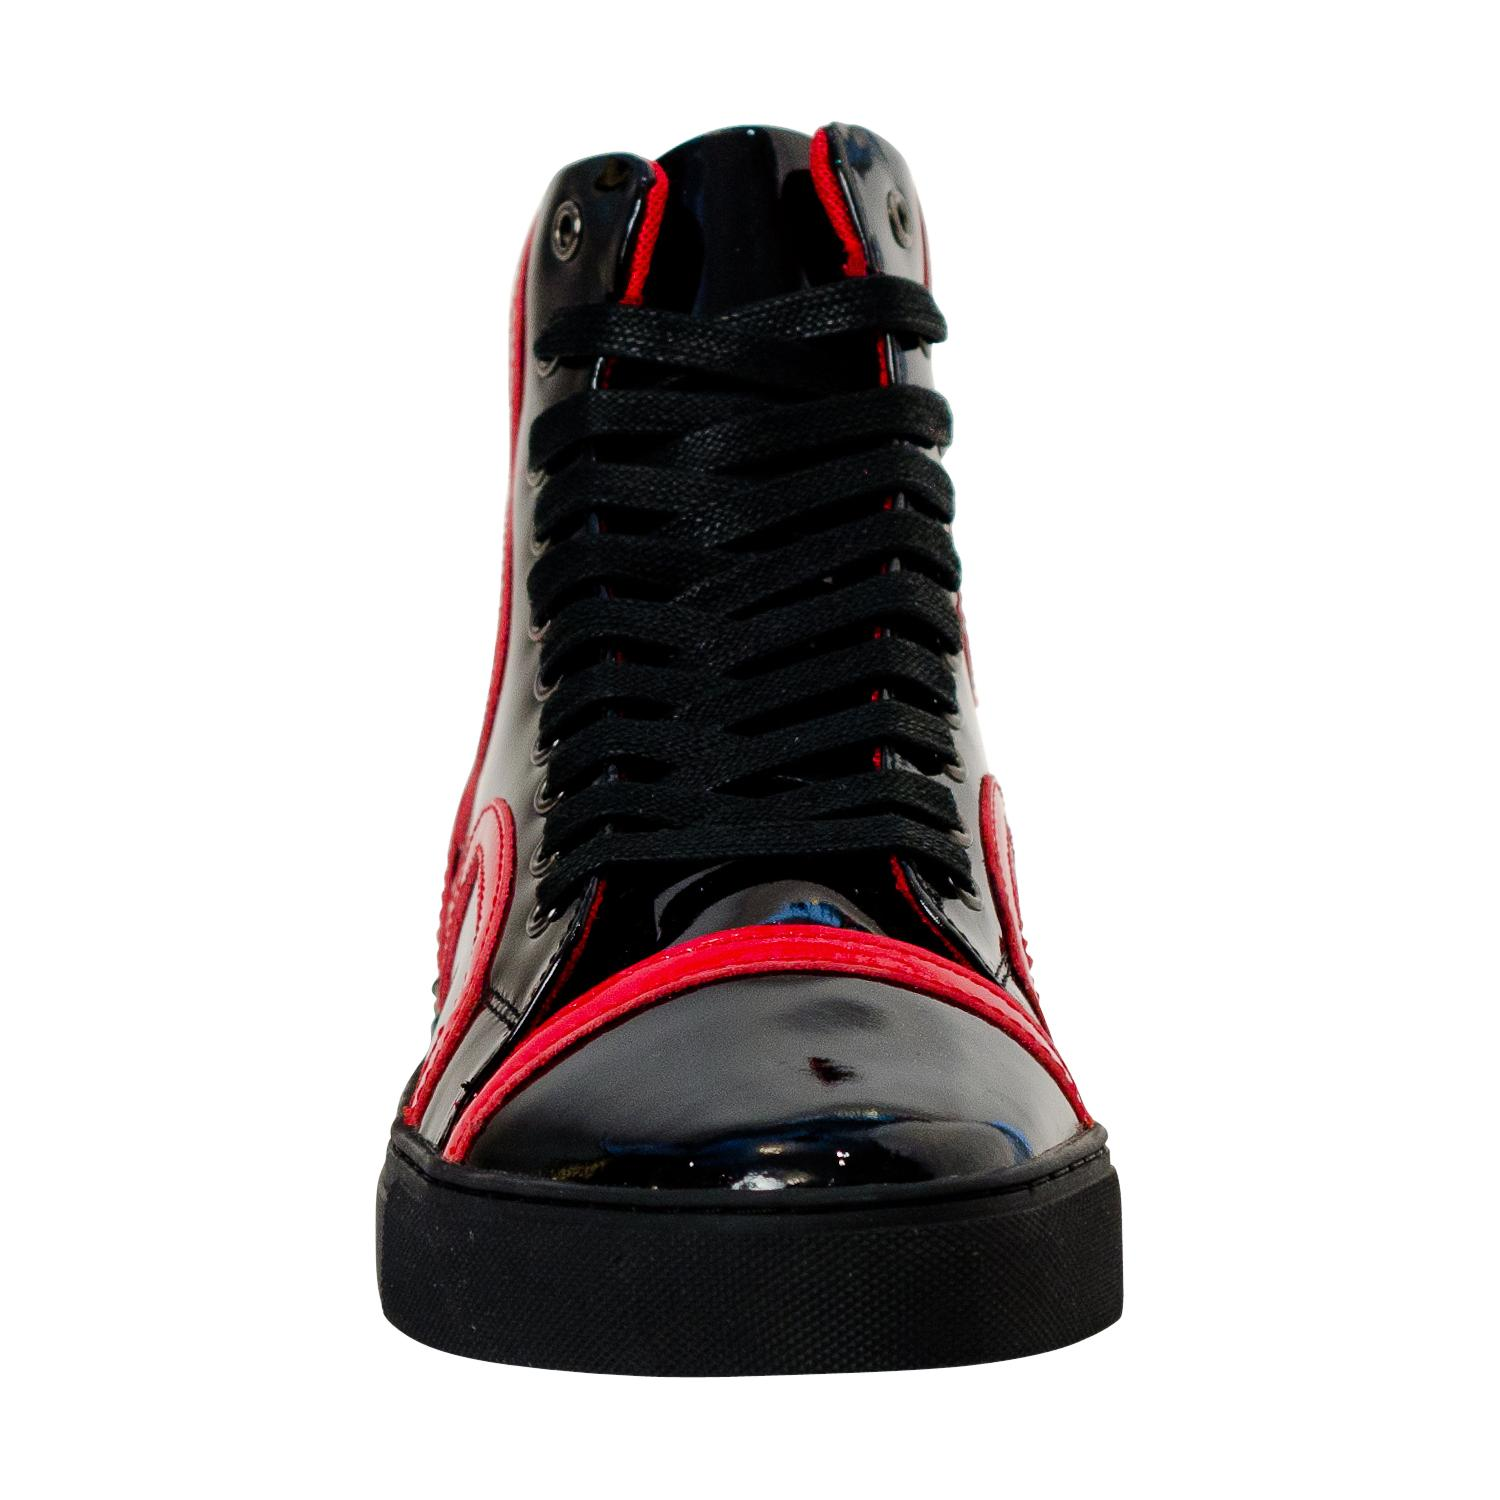 Bogart Black And Red Paolo Shoes